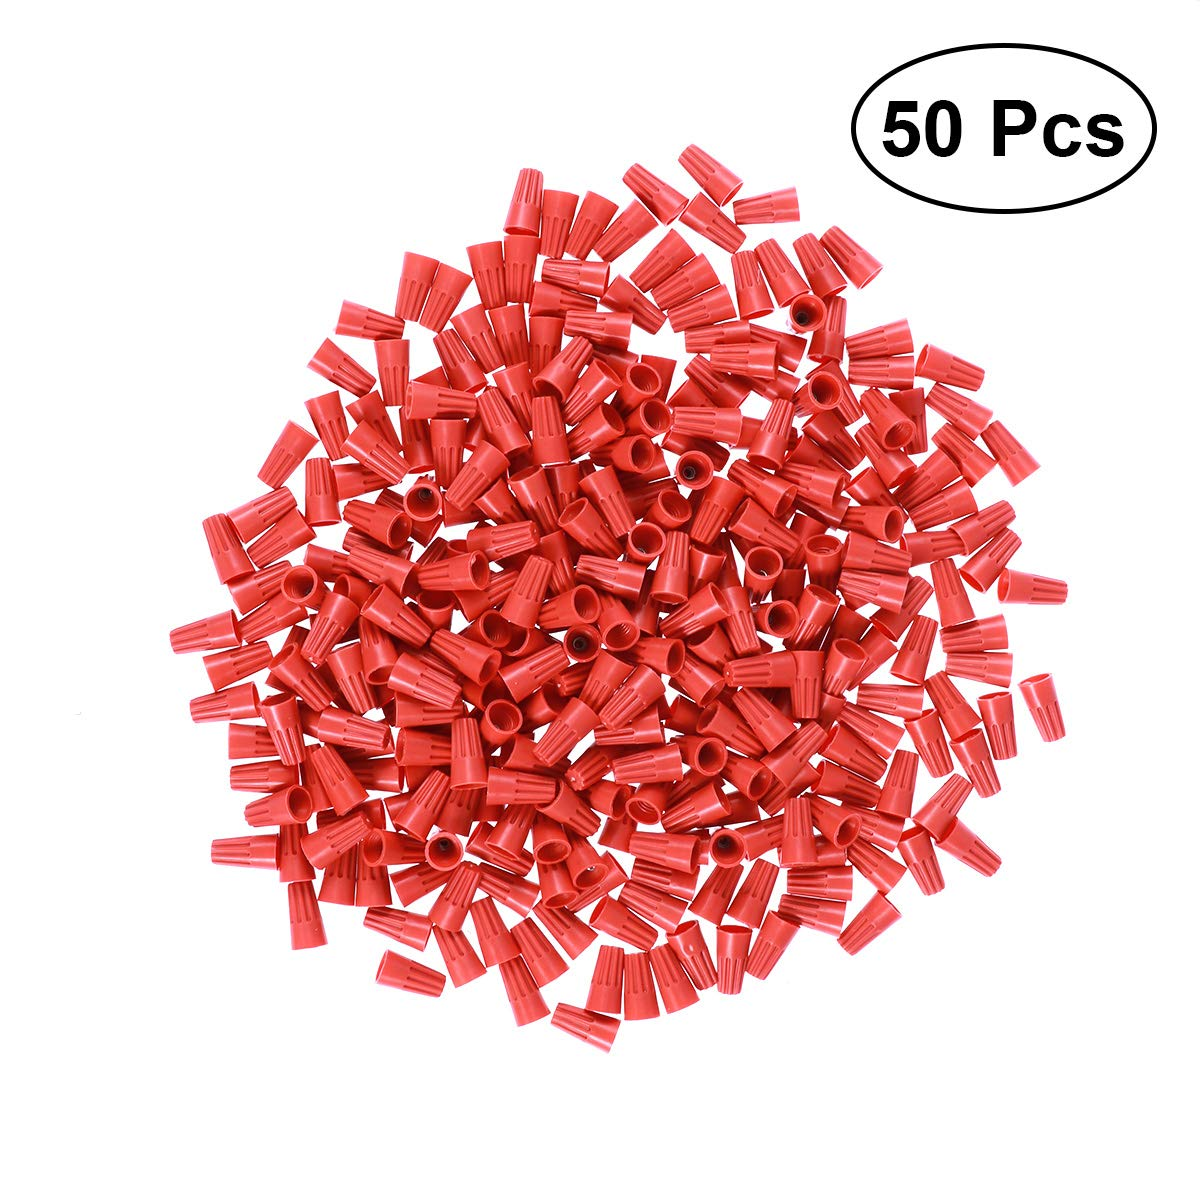 BESTOMZ 500 PCS Outdoor Electrical Wire Connector Wire Crimp Terminals Connectors (Red)